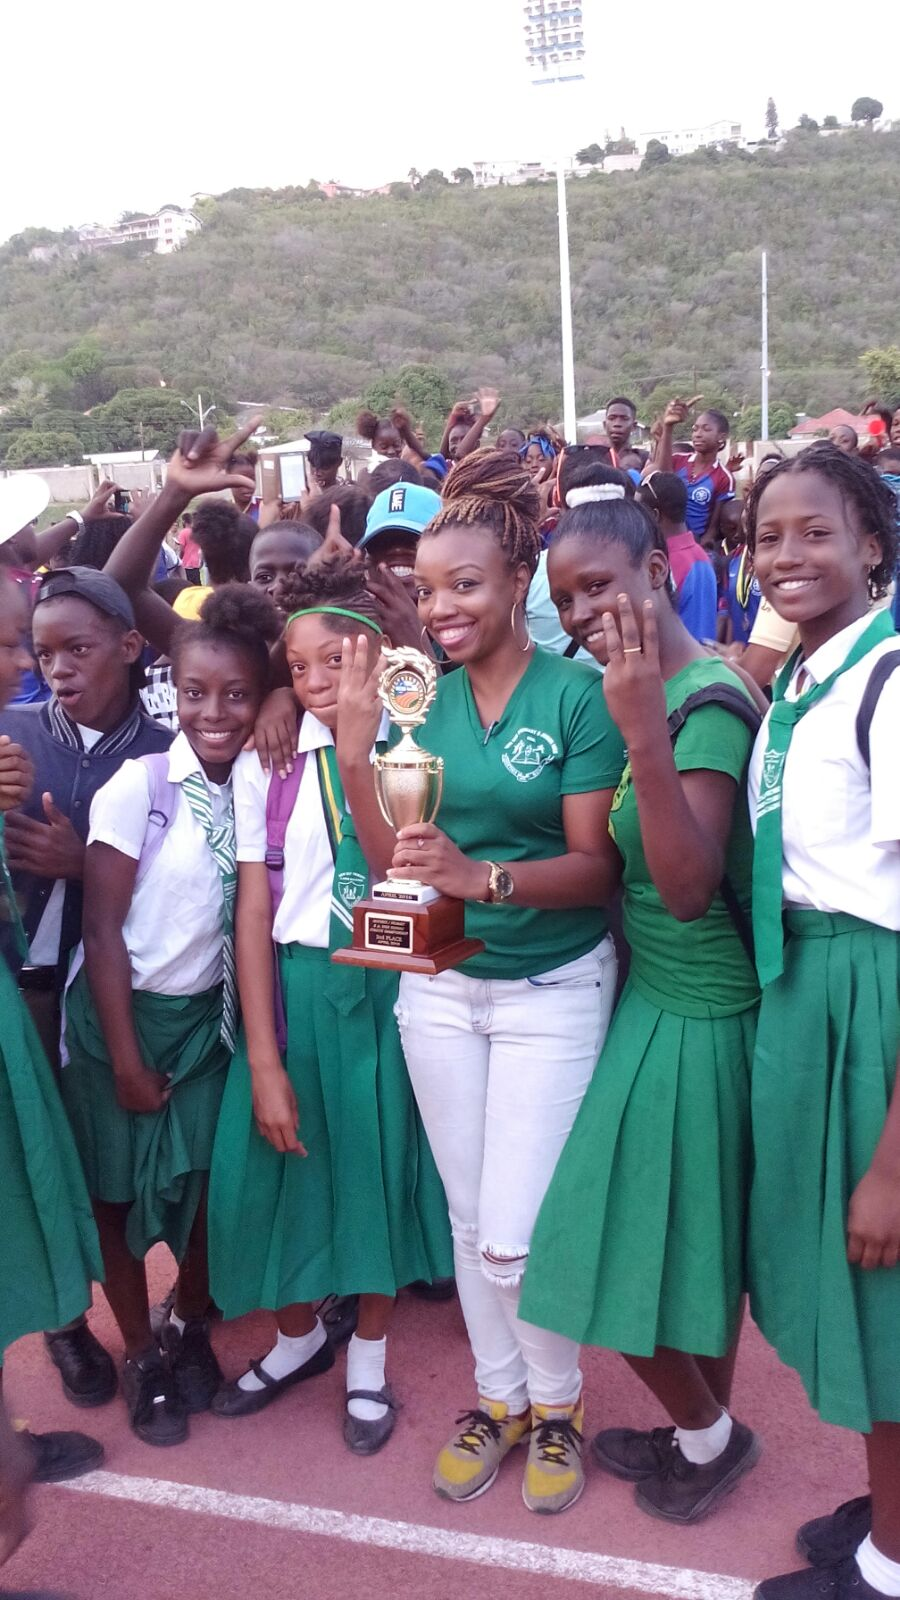 IMG_1915 (1) New Day School Junior Champs Picture